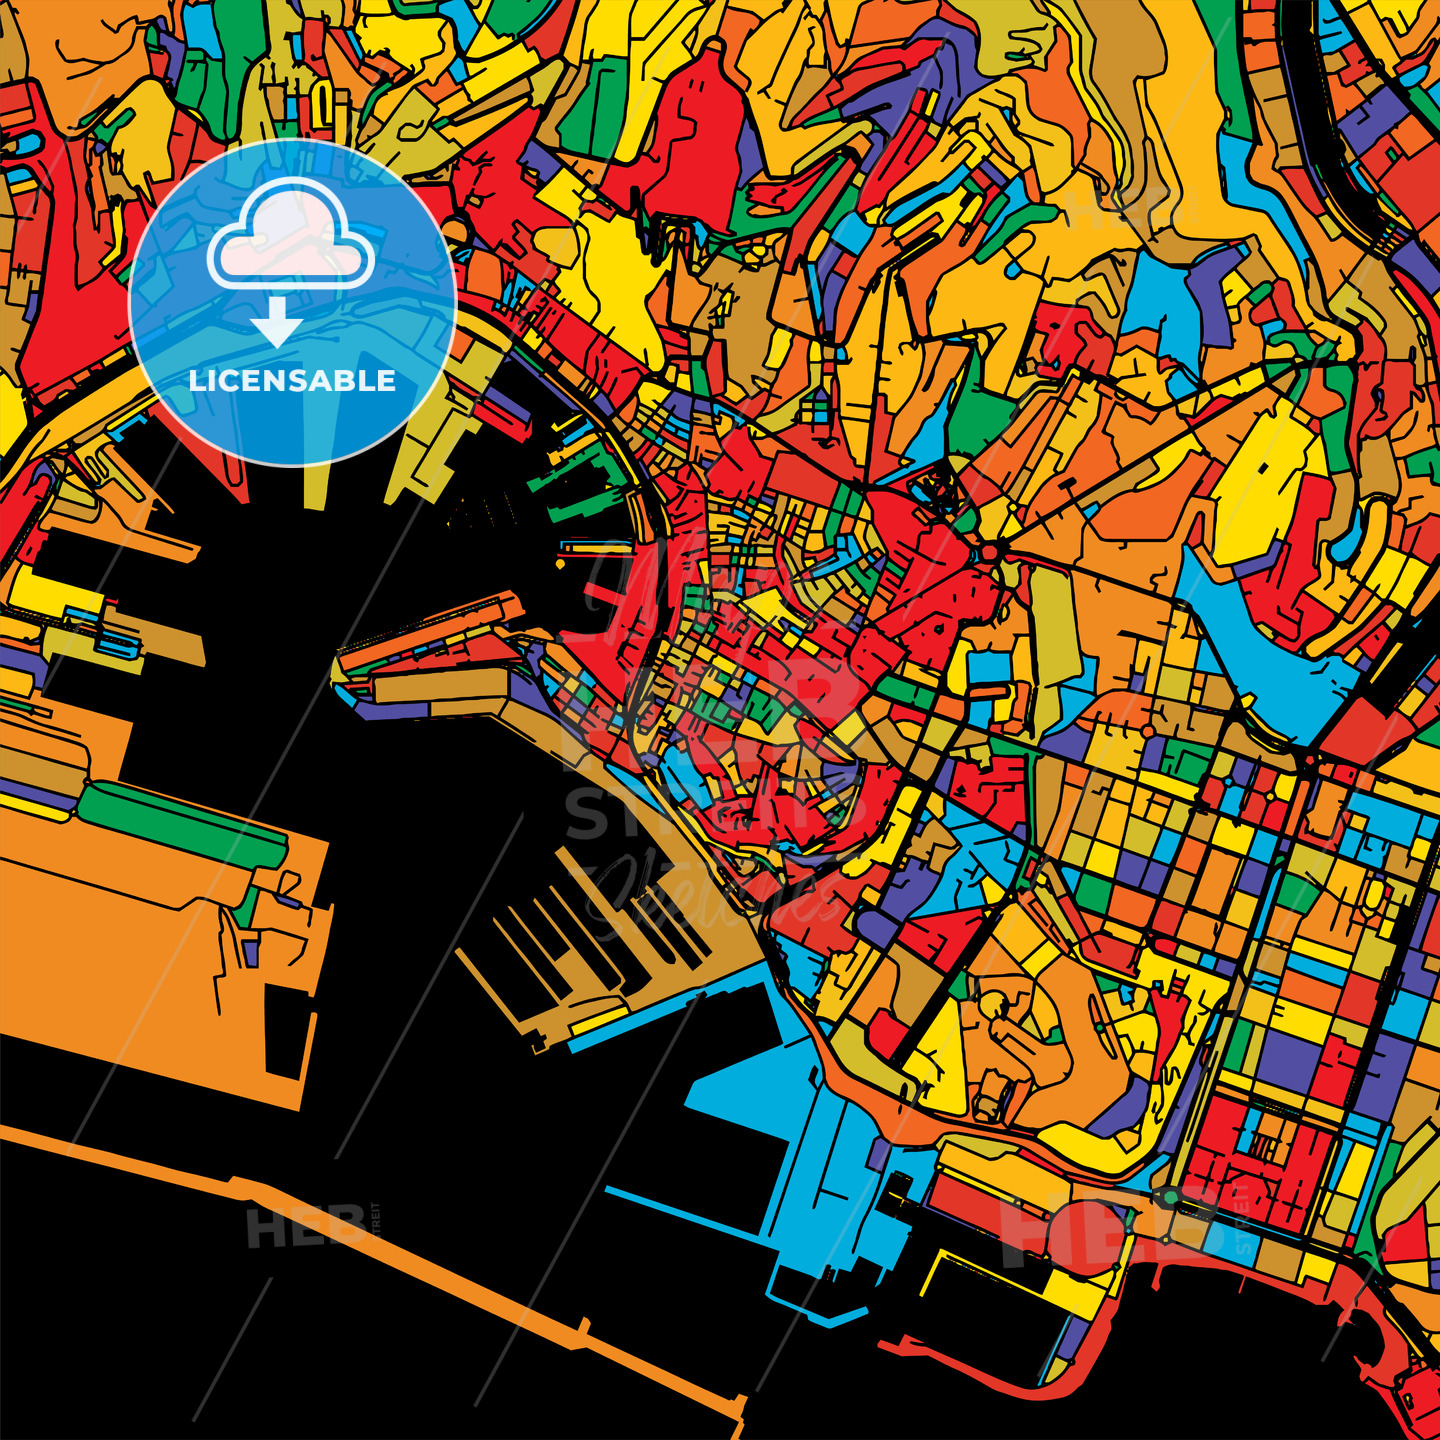 Genoa Colorful Vector Map on Black - HEBSTREIT's Sketches